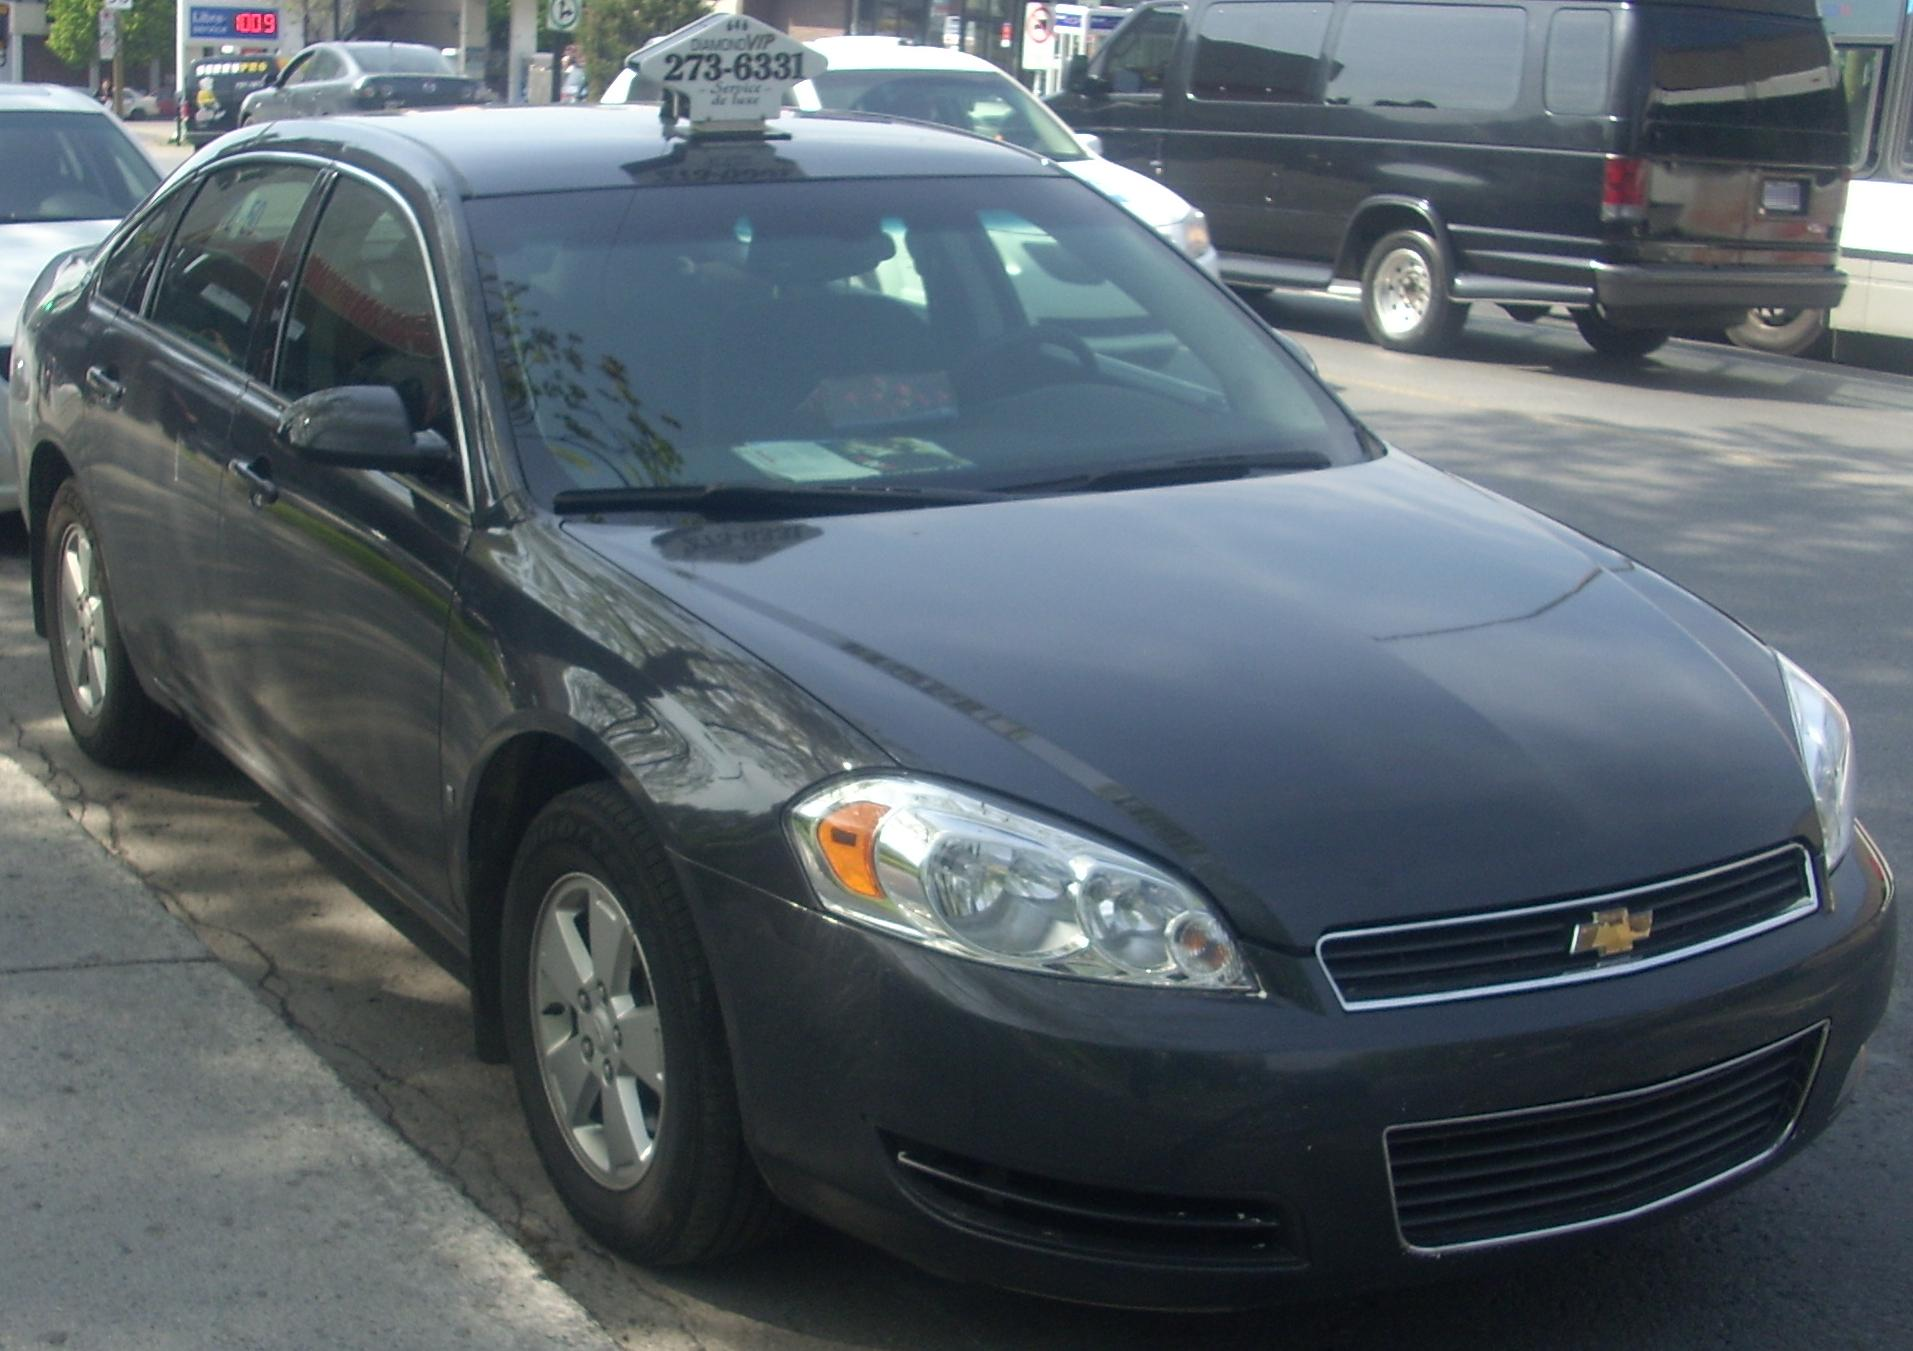 %2708_Chevrolet_Impala_Taxi Cool Review About 2004 Chevy Impala Gas Mileage with Exciting Photos Cars Review